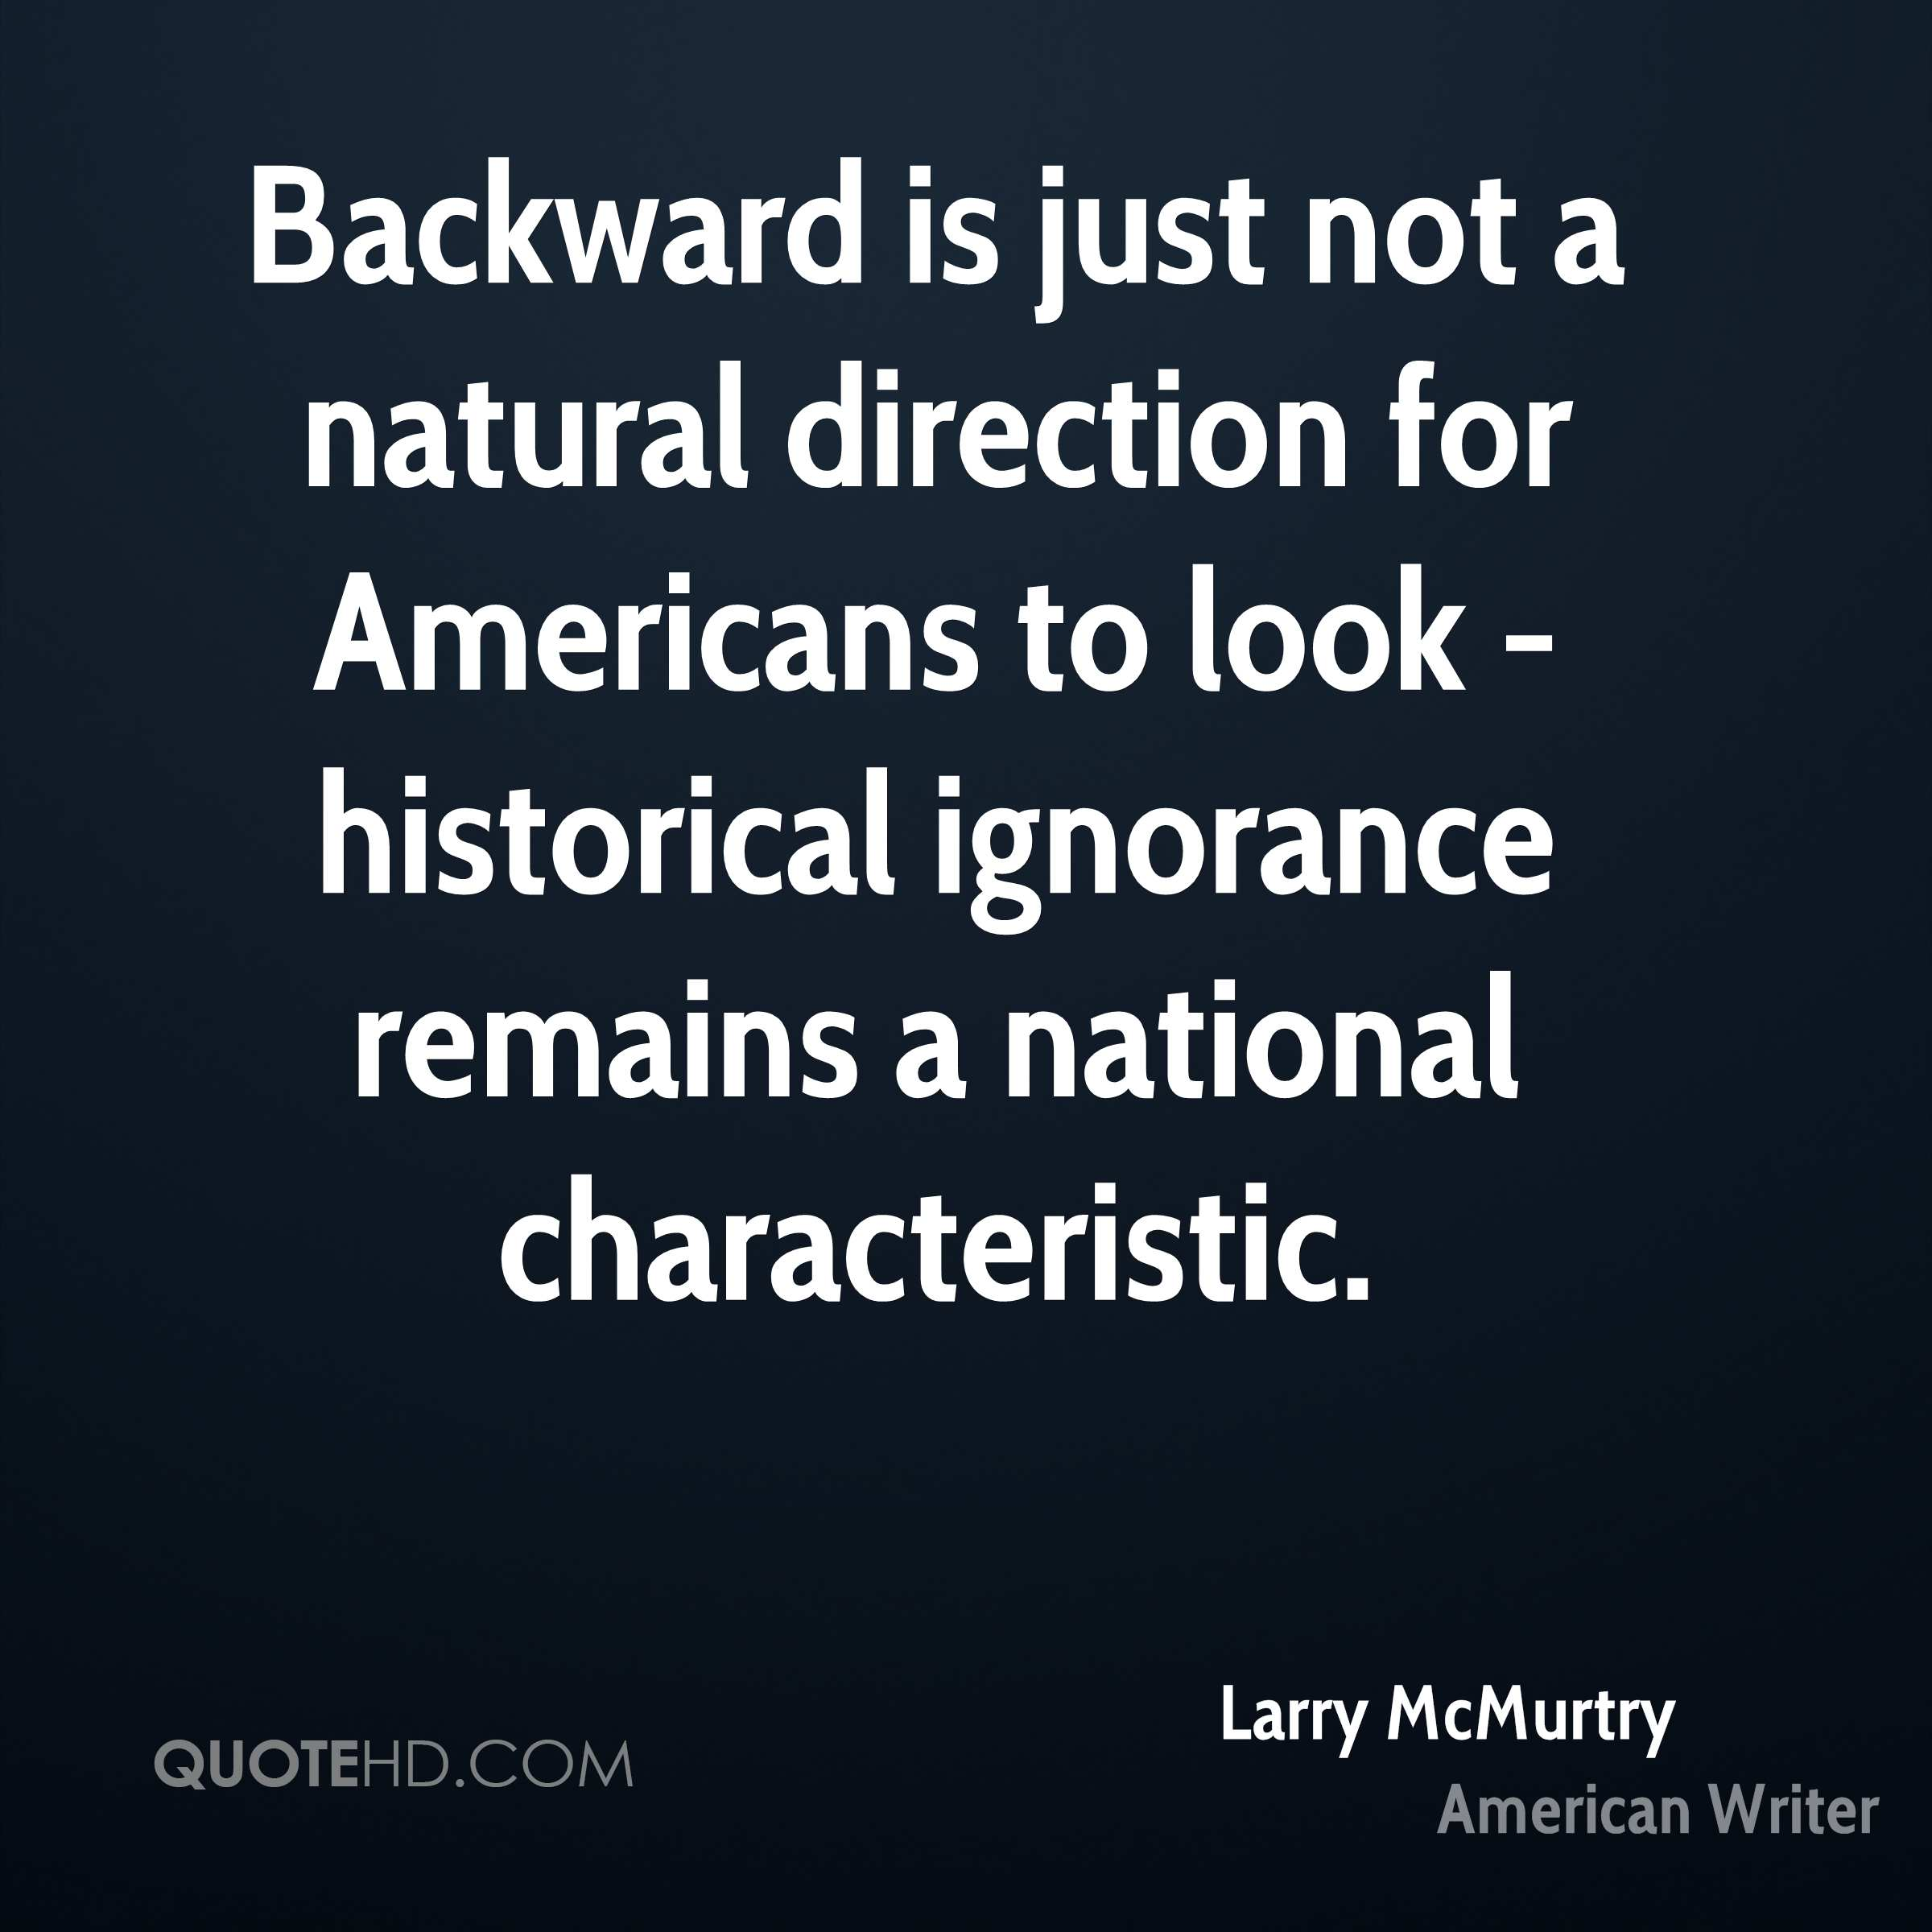 Backward is just not a natural direction for Americans to look - historical ignorance remains a national characteristic.